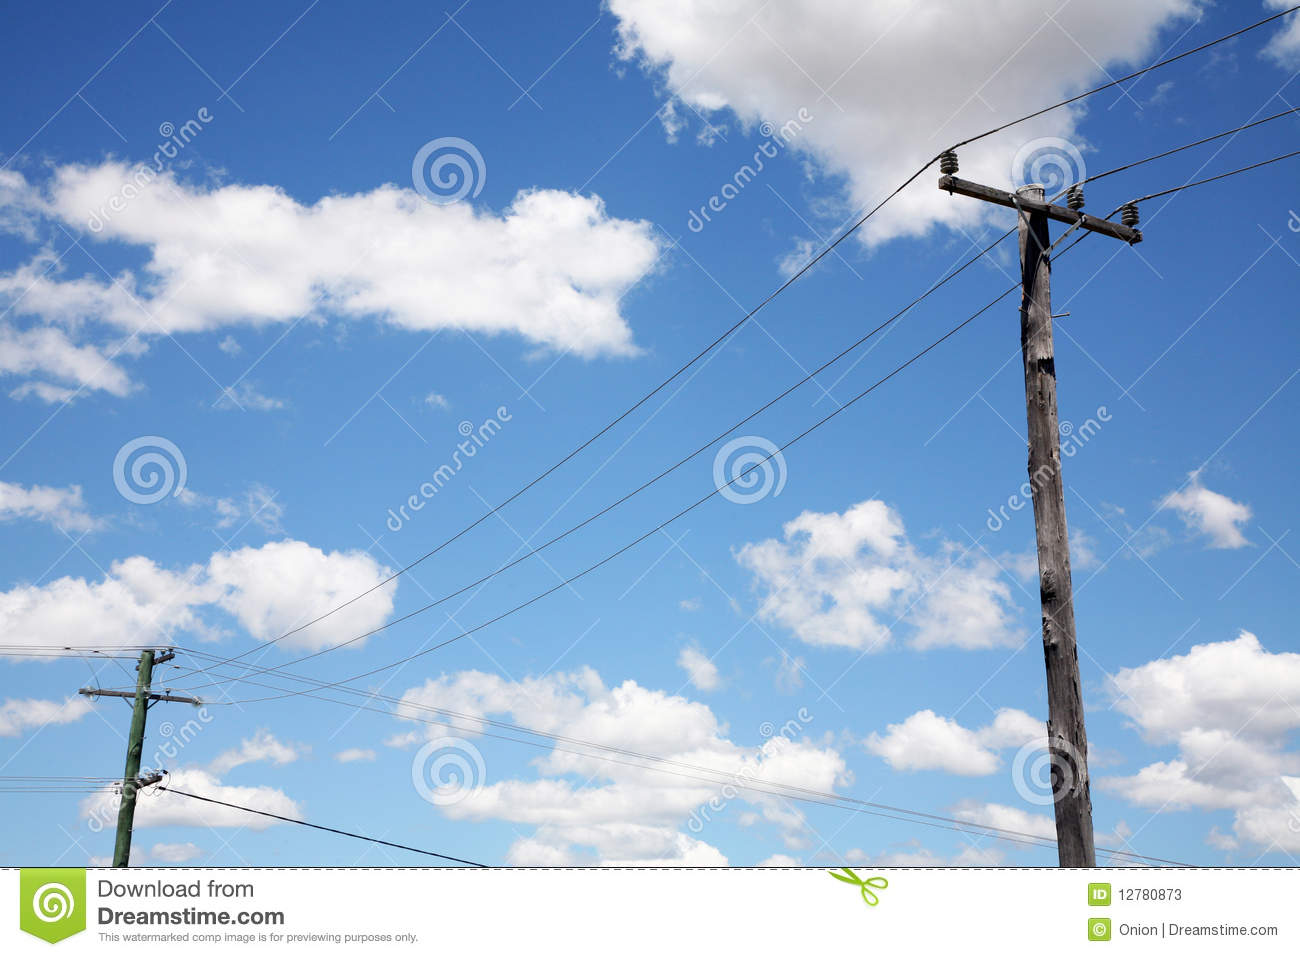 Telephone poles with wires stock image. Image of cloudy - 12780873